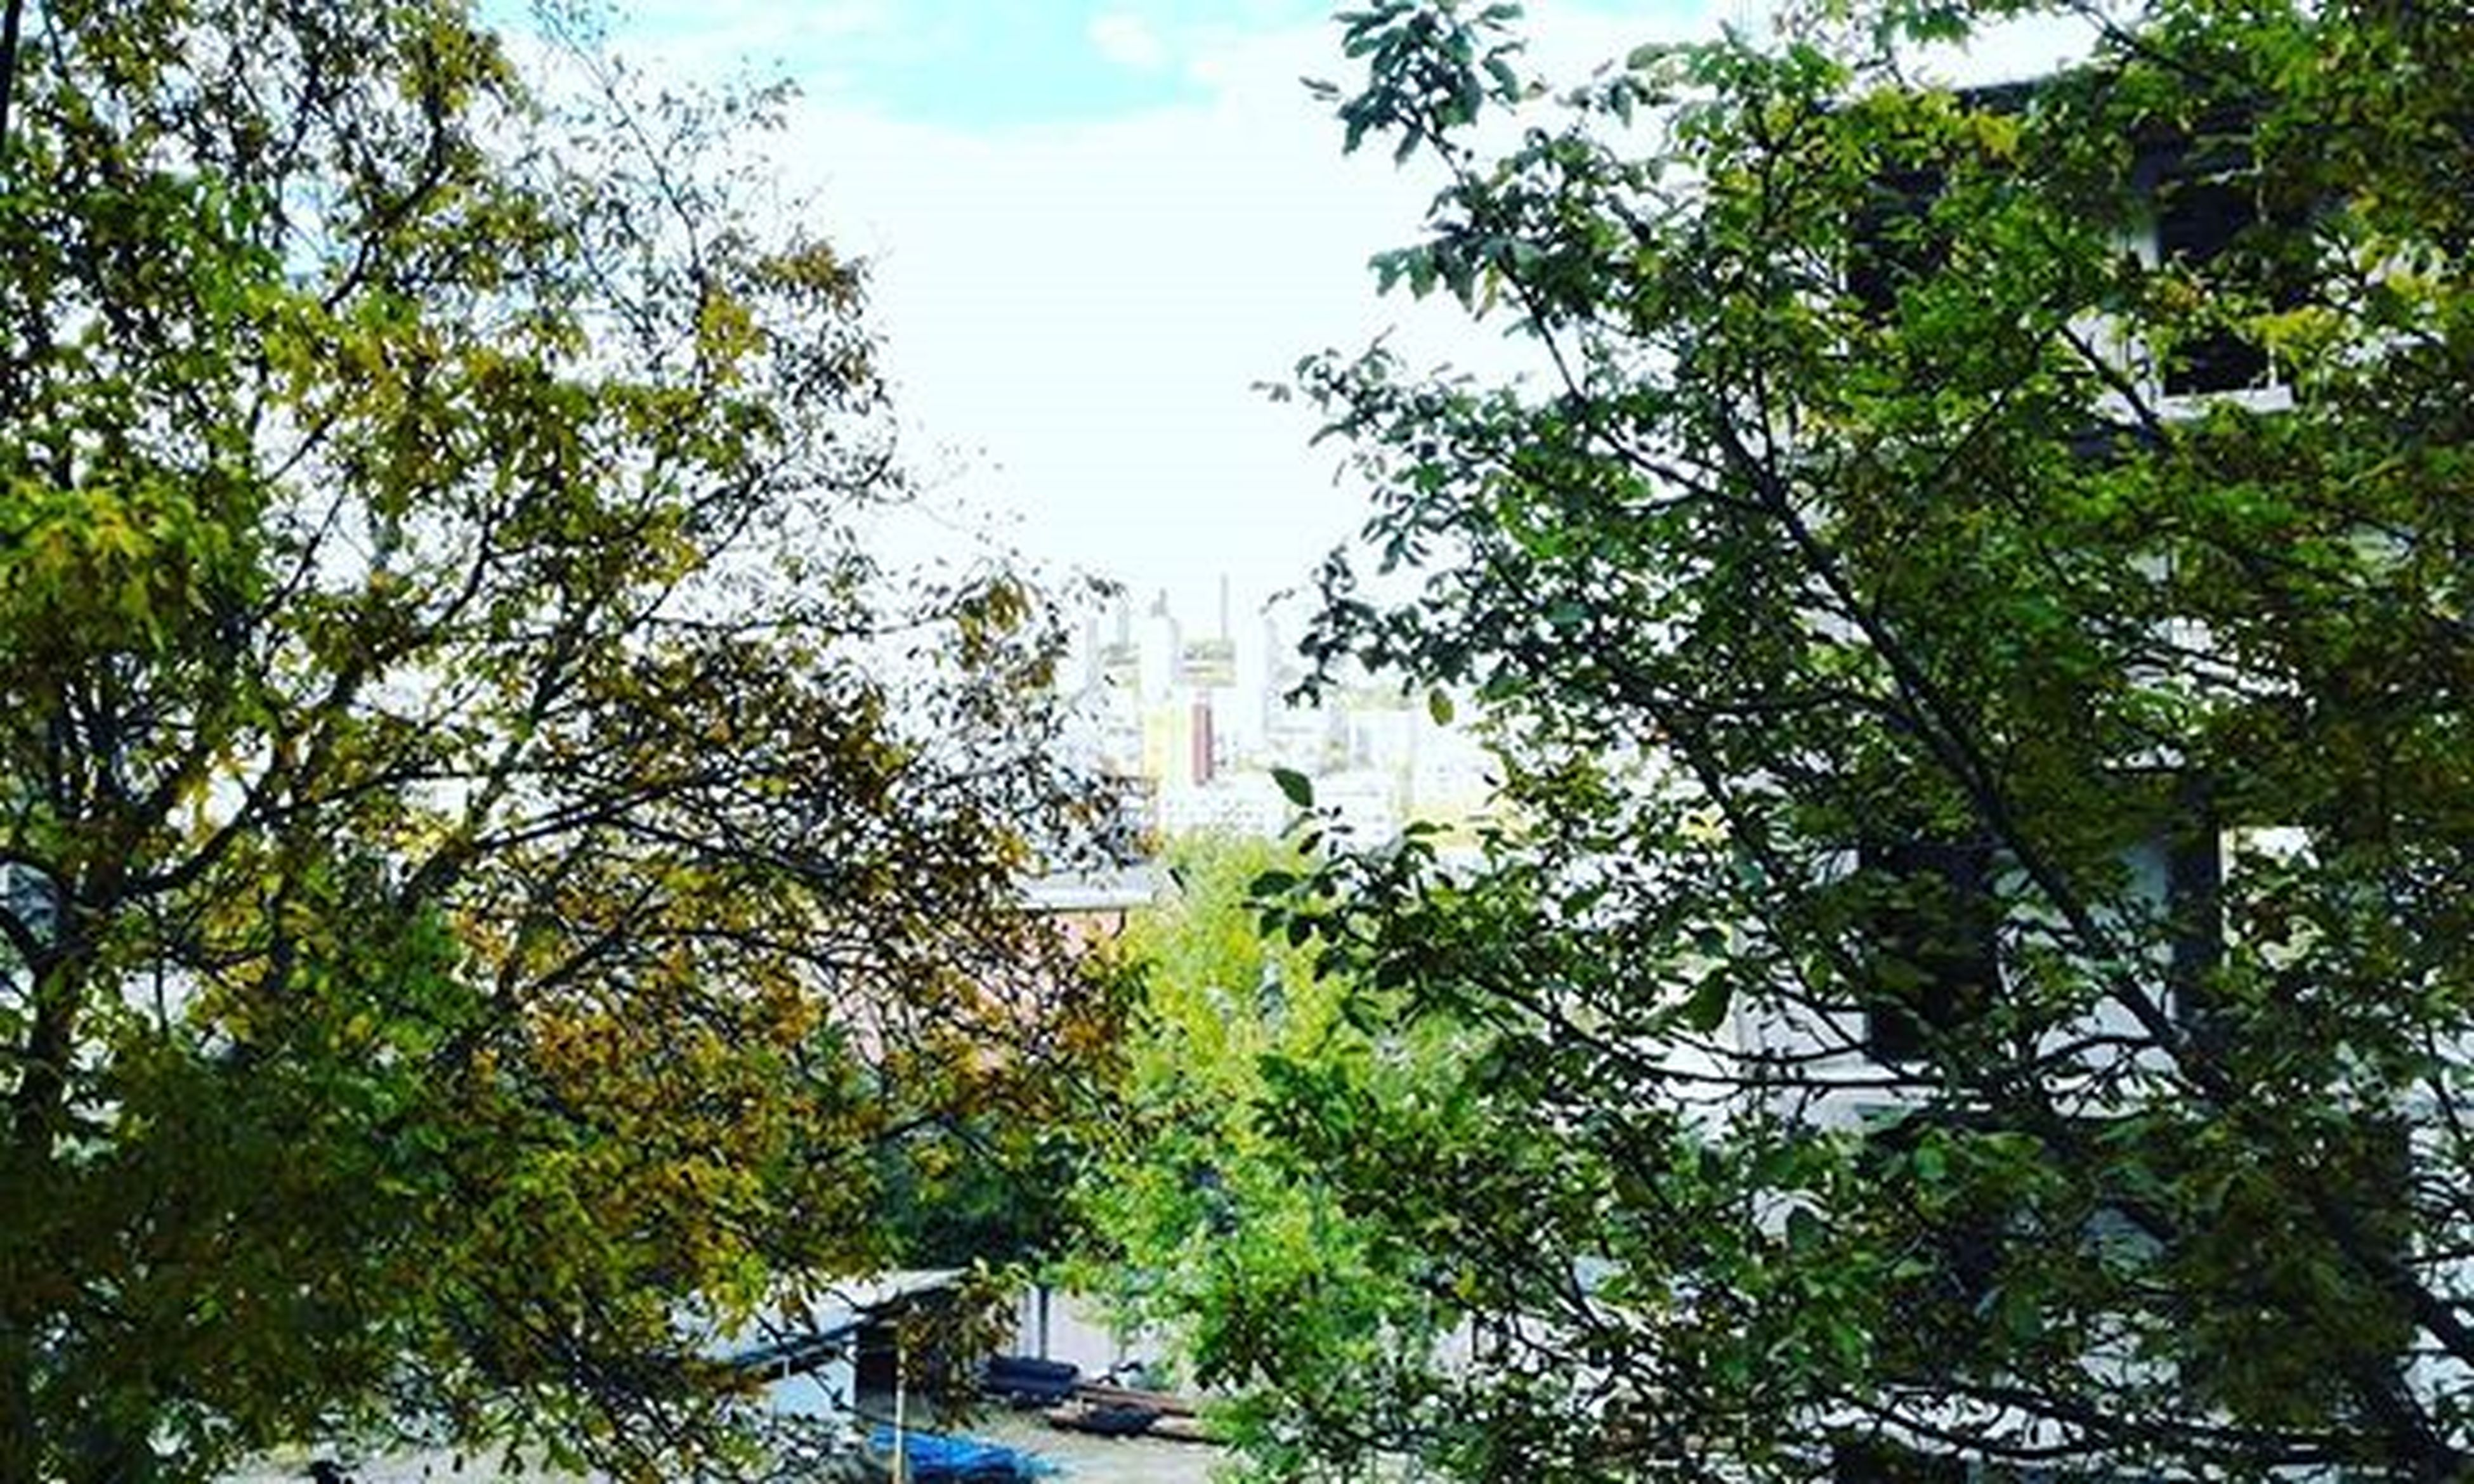 tree, low angle view, growth, building exterior, built structure, architecture, sky, branch, green color, day, nature, tall - high, outdoors, no people, tree trunk, lush foliage, tower, sunlight, city, tranquility